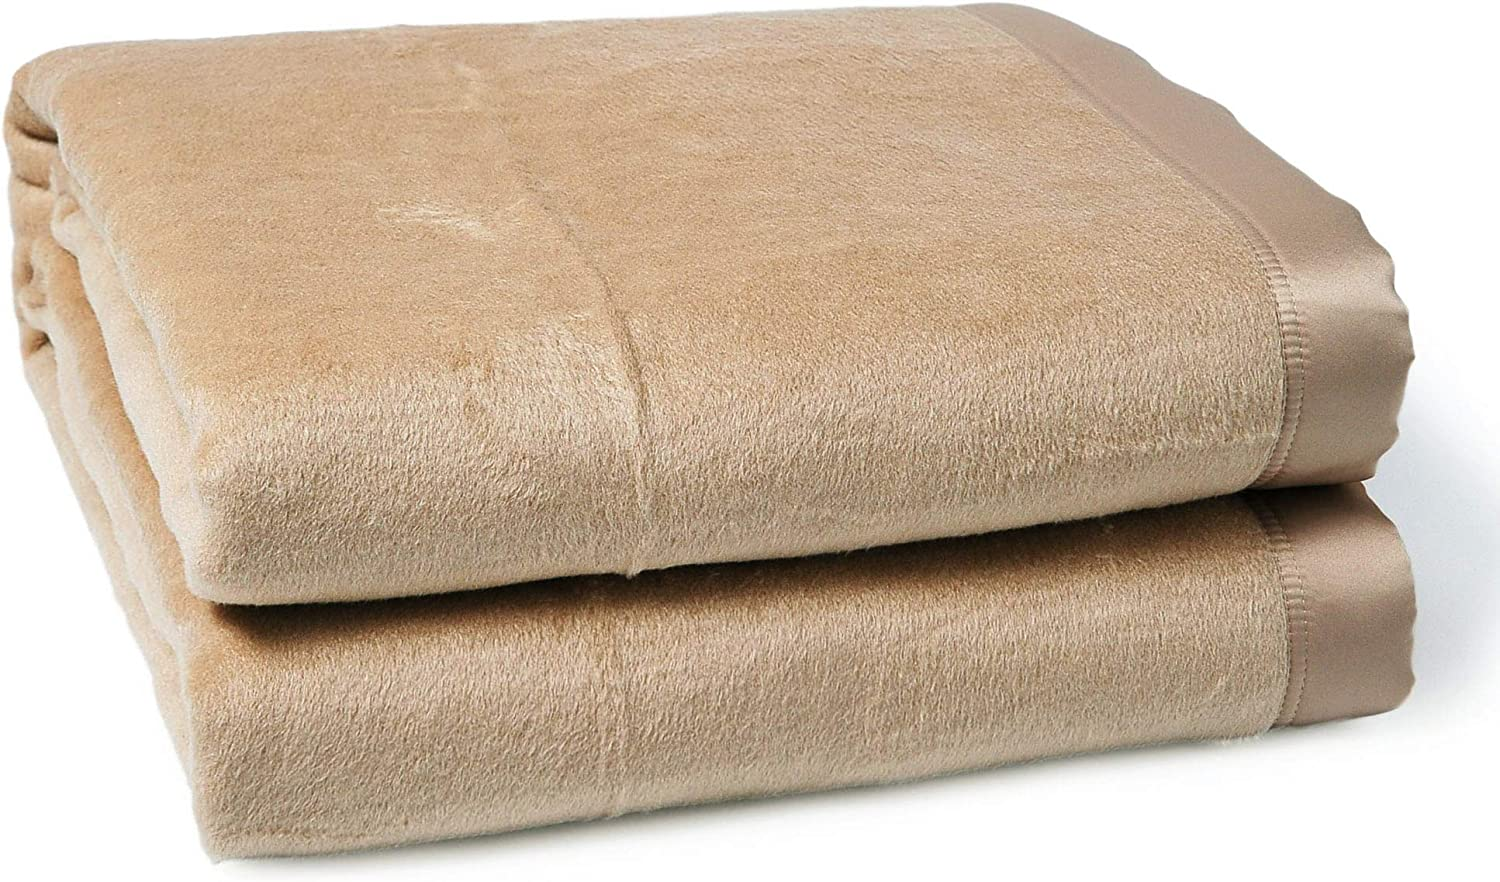 """CUDDLE DREAMS Silk Blanket for All Seasons, Premium Mulberry Silk, Naturally Soft, Breathable (Taupe, Full/Queen 90"""" × 90""""): Home & Kitchen"""